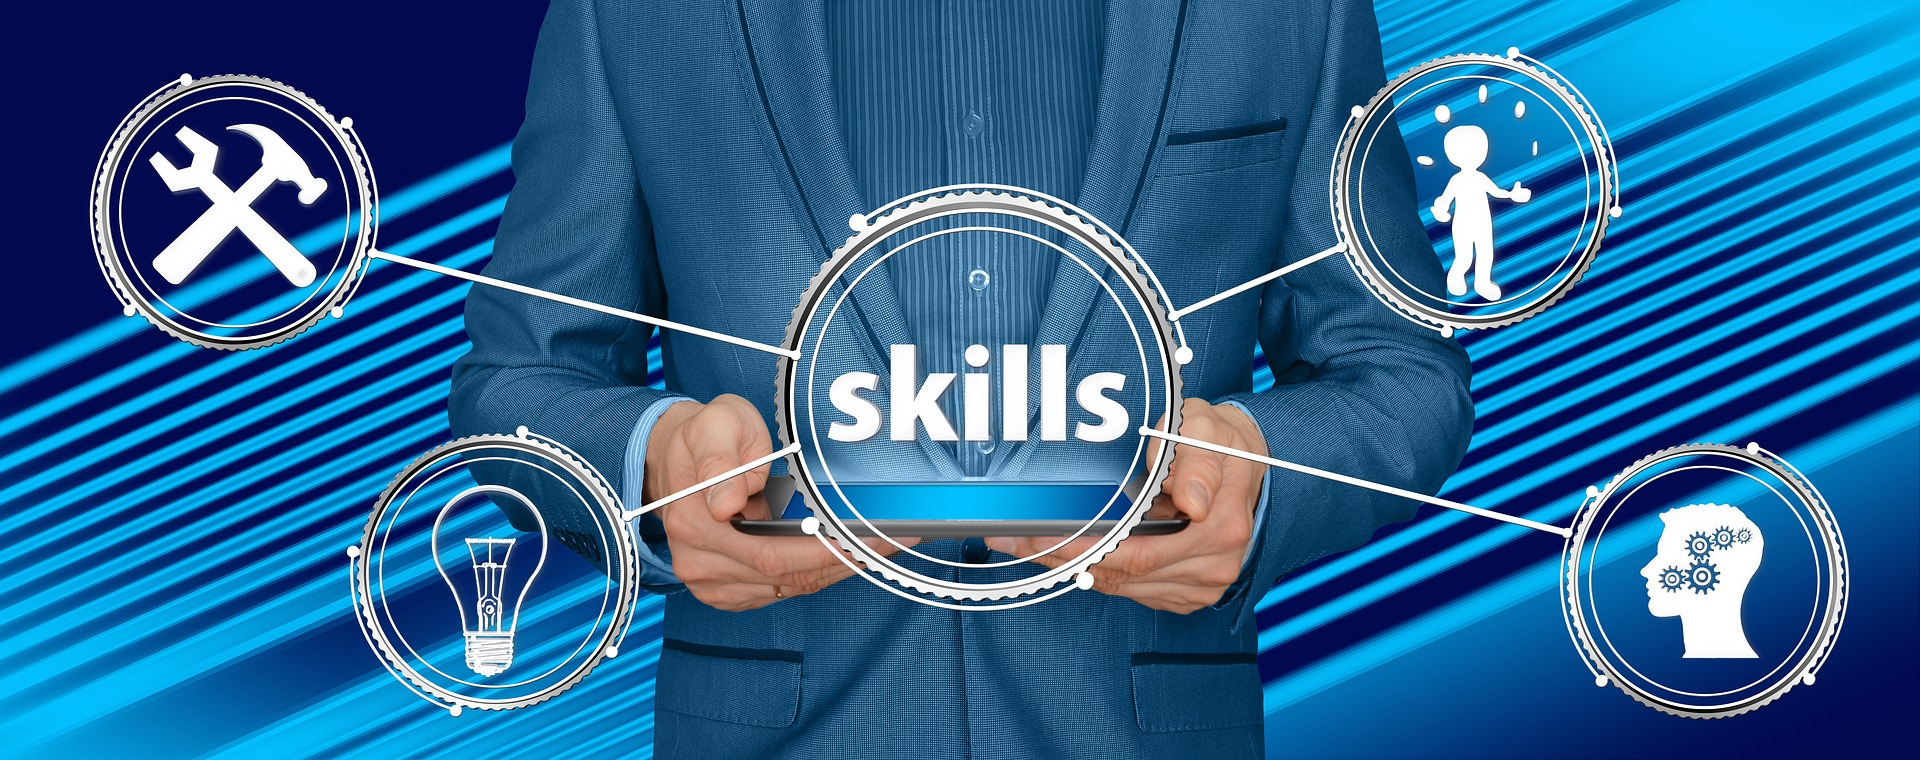 skill thats will make your resume stick out